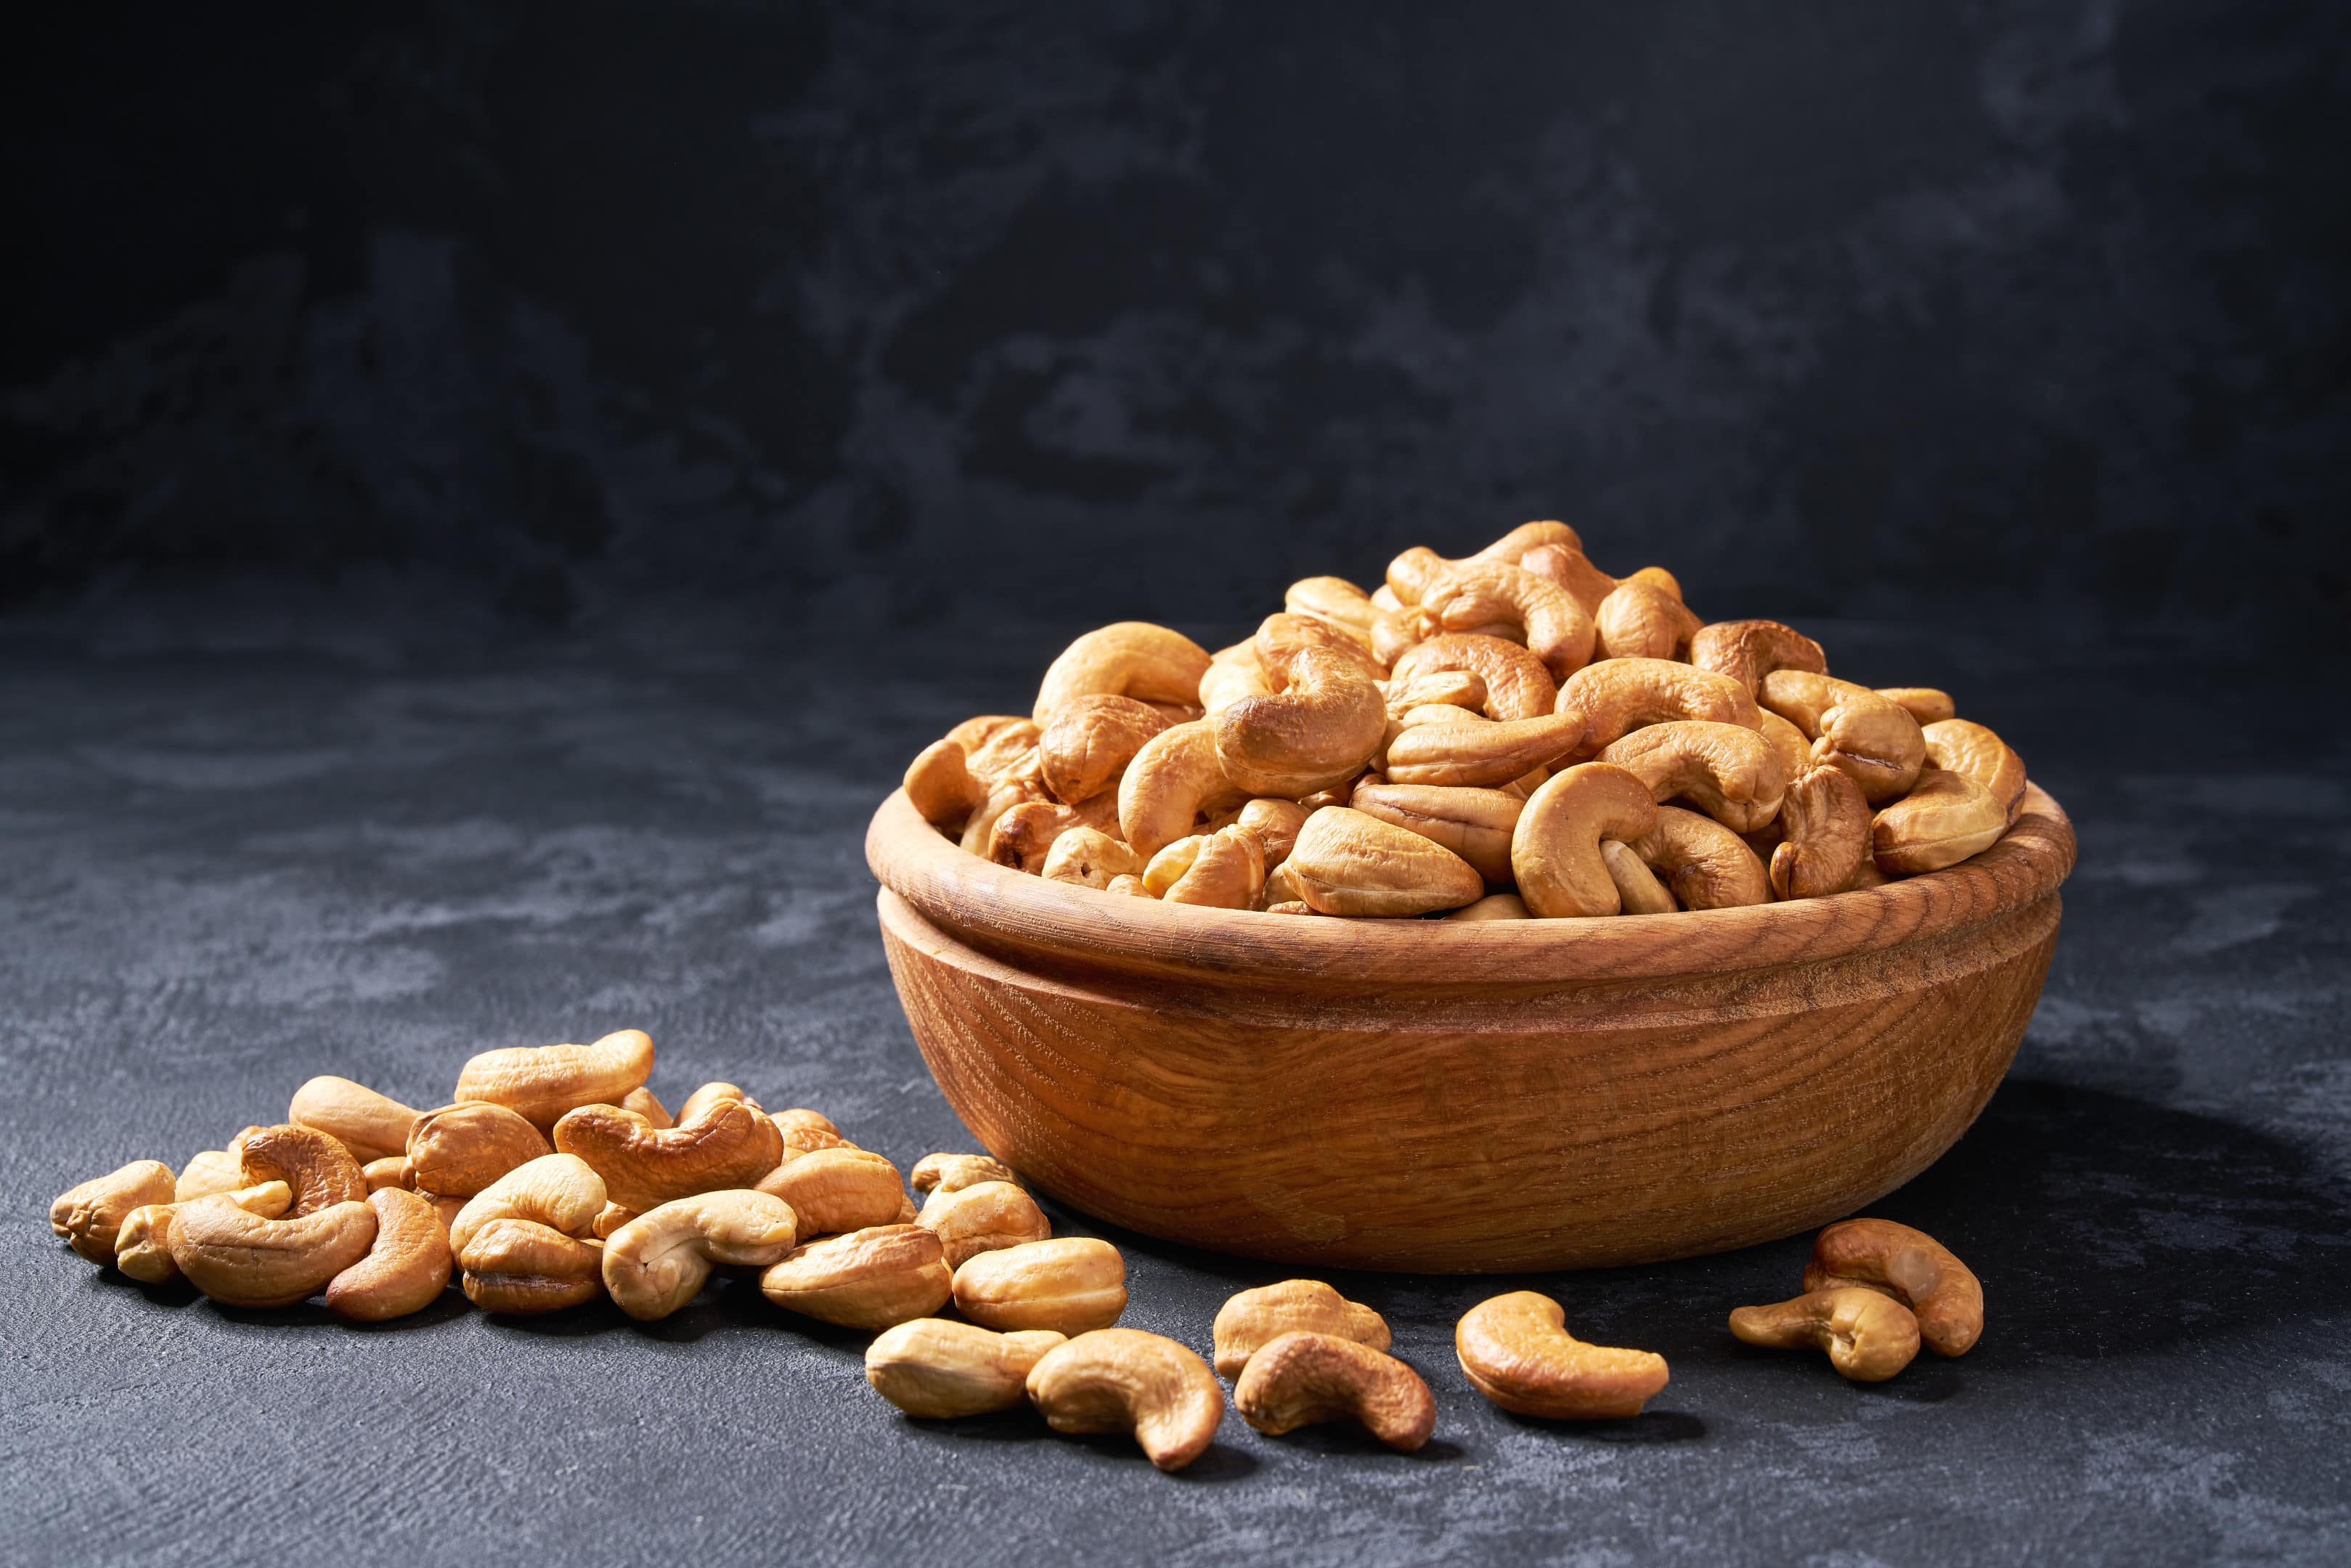 Cashew nuts in wooden bowl